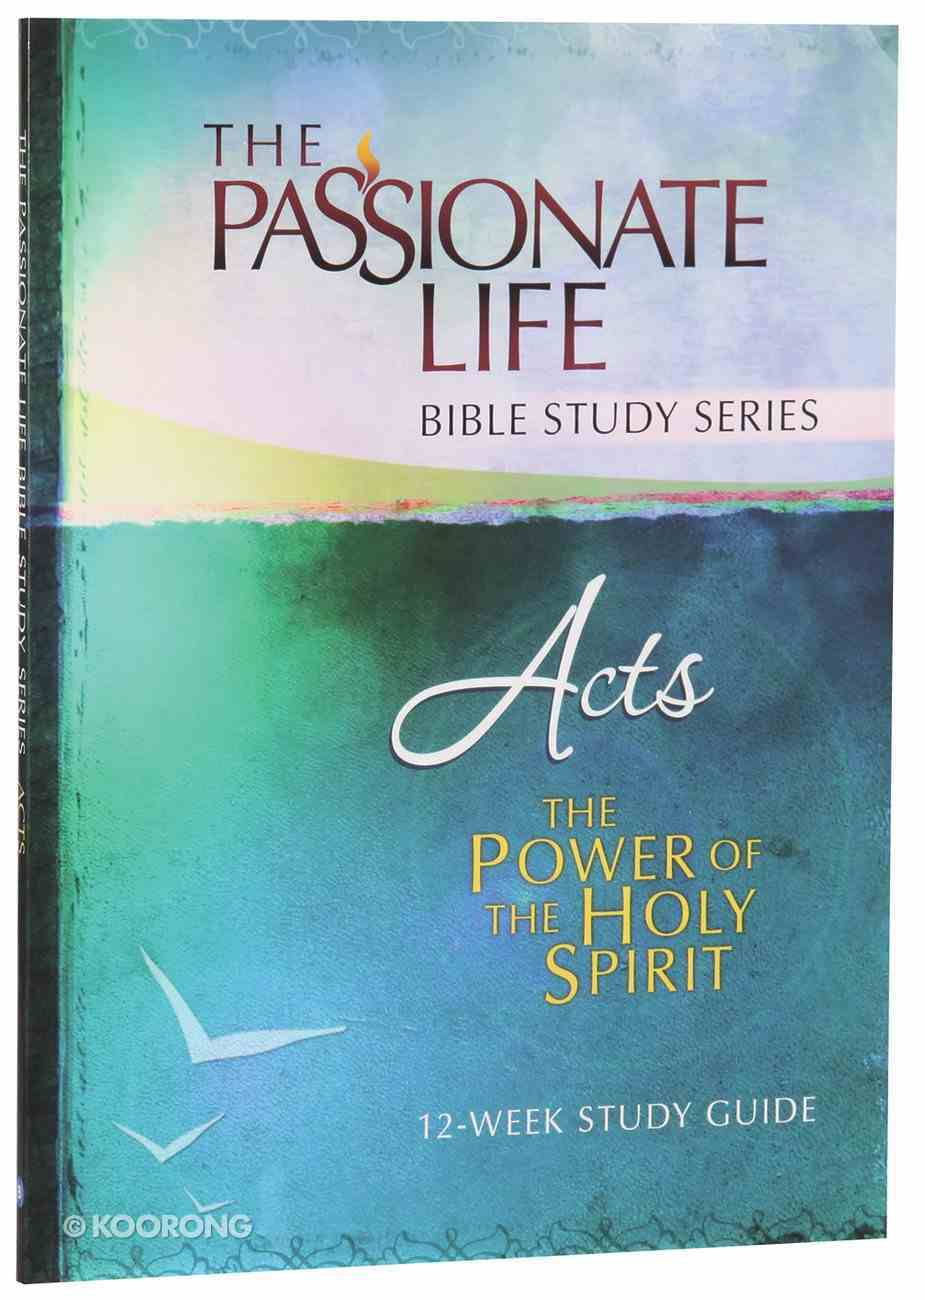 Acts - the Power of the Holy Spirit (The Passionate Life Bible Study Series) Paperback